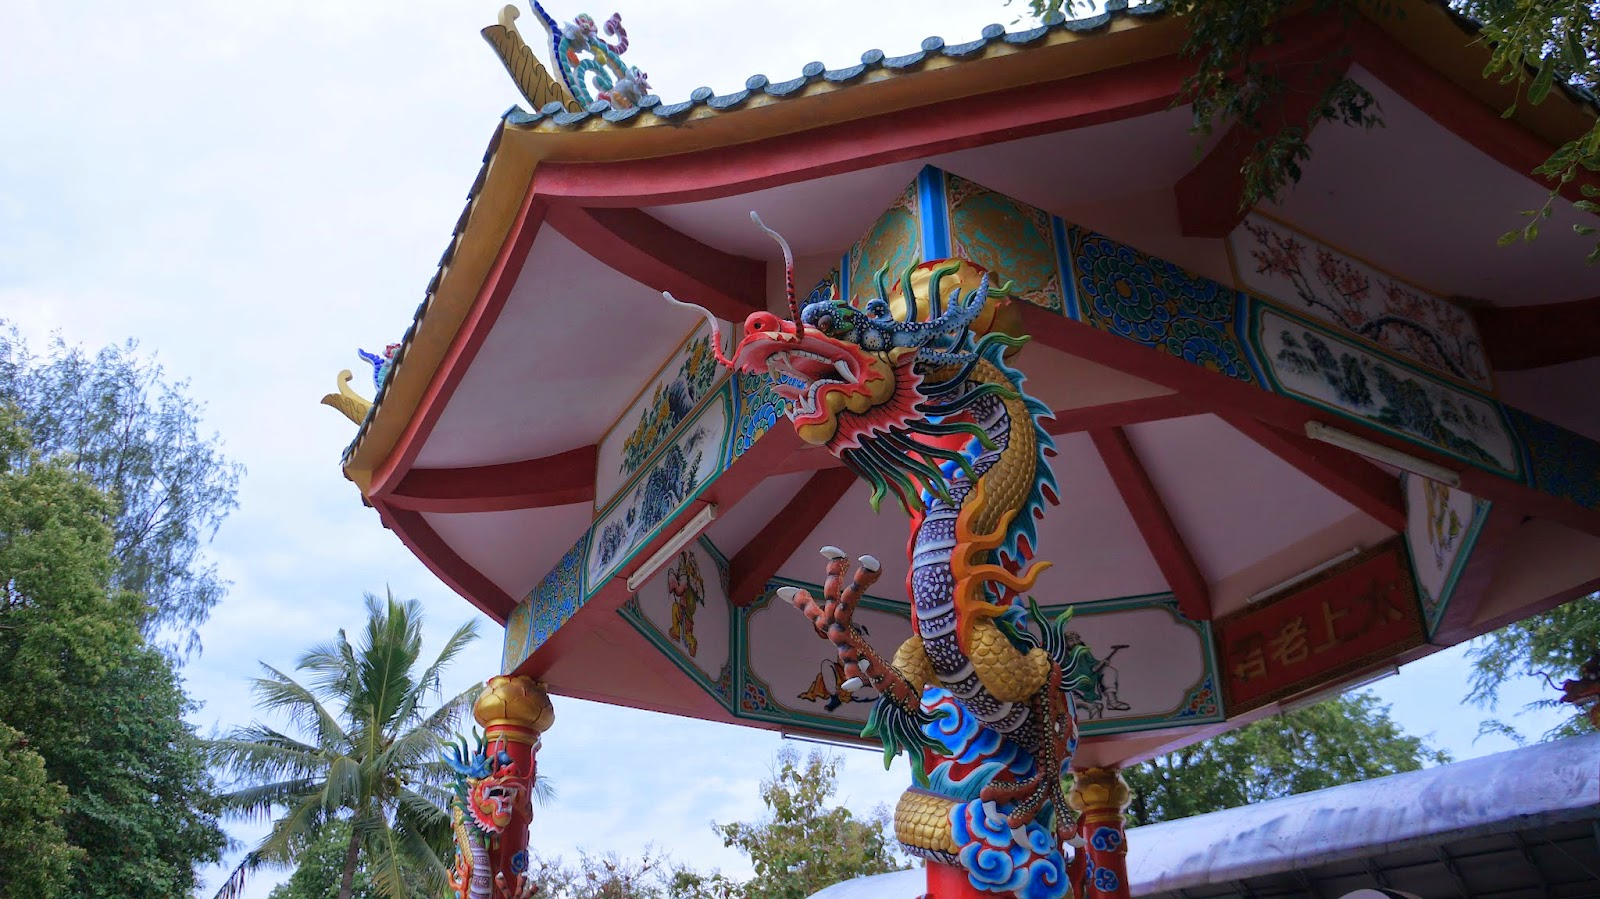 Interesting depictions of Chinese folklore in Wang Sam Sien Temple